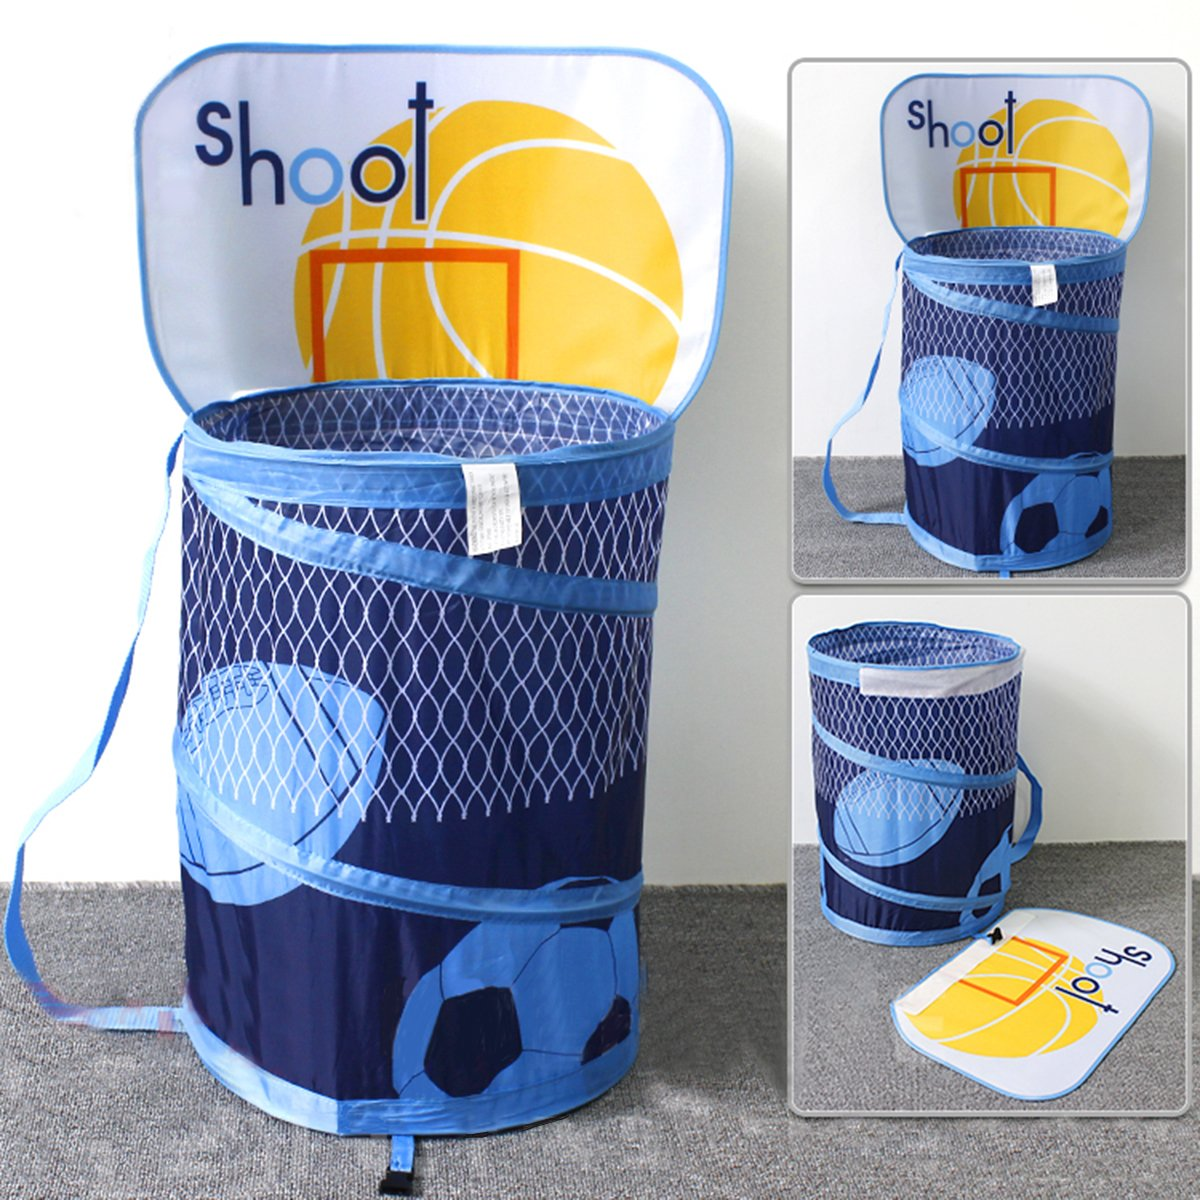 Ao blare 14X19Inch Basketball Hoop Toy Bucket Laundry Basket Clothes Hamper Toys Basket Storage Bucket Folding Cylinder Laundry Basket Toy Box Organizer Storage Bag